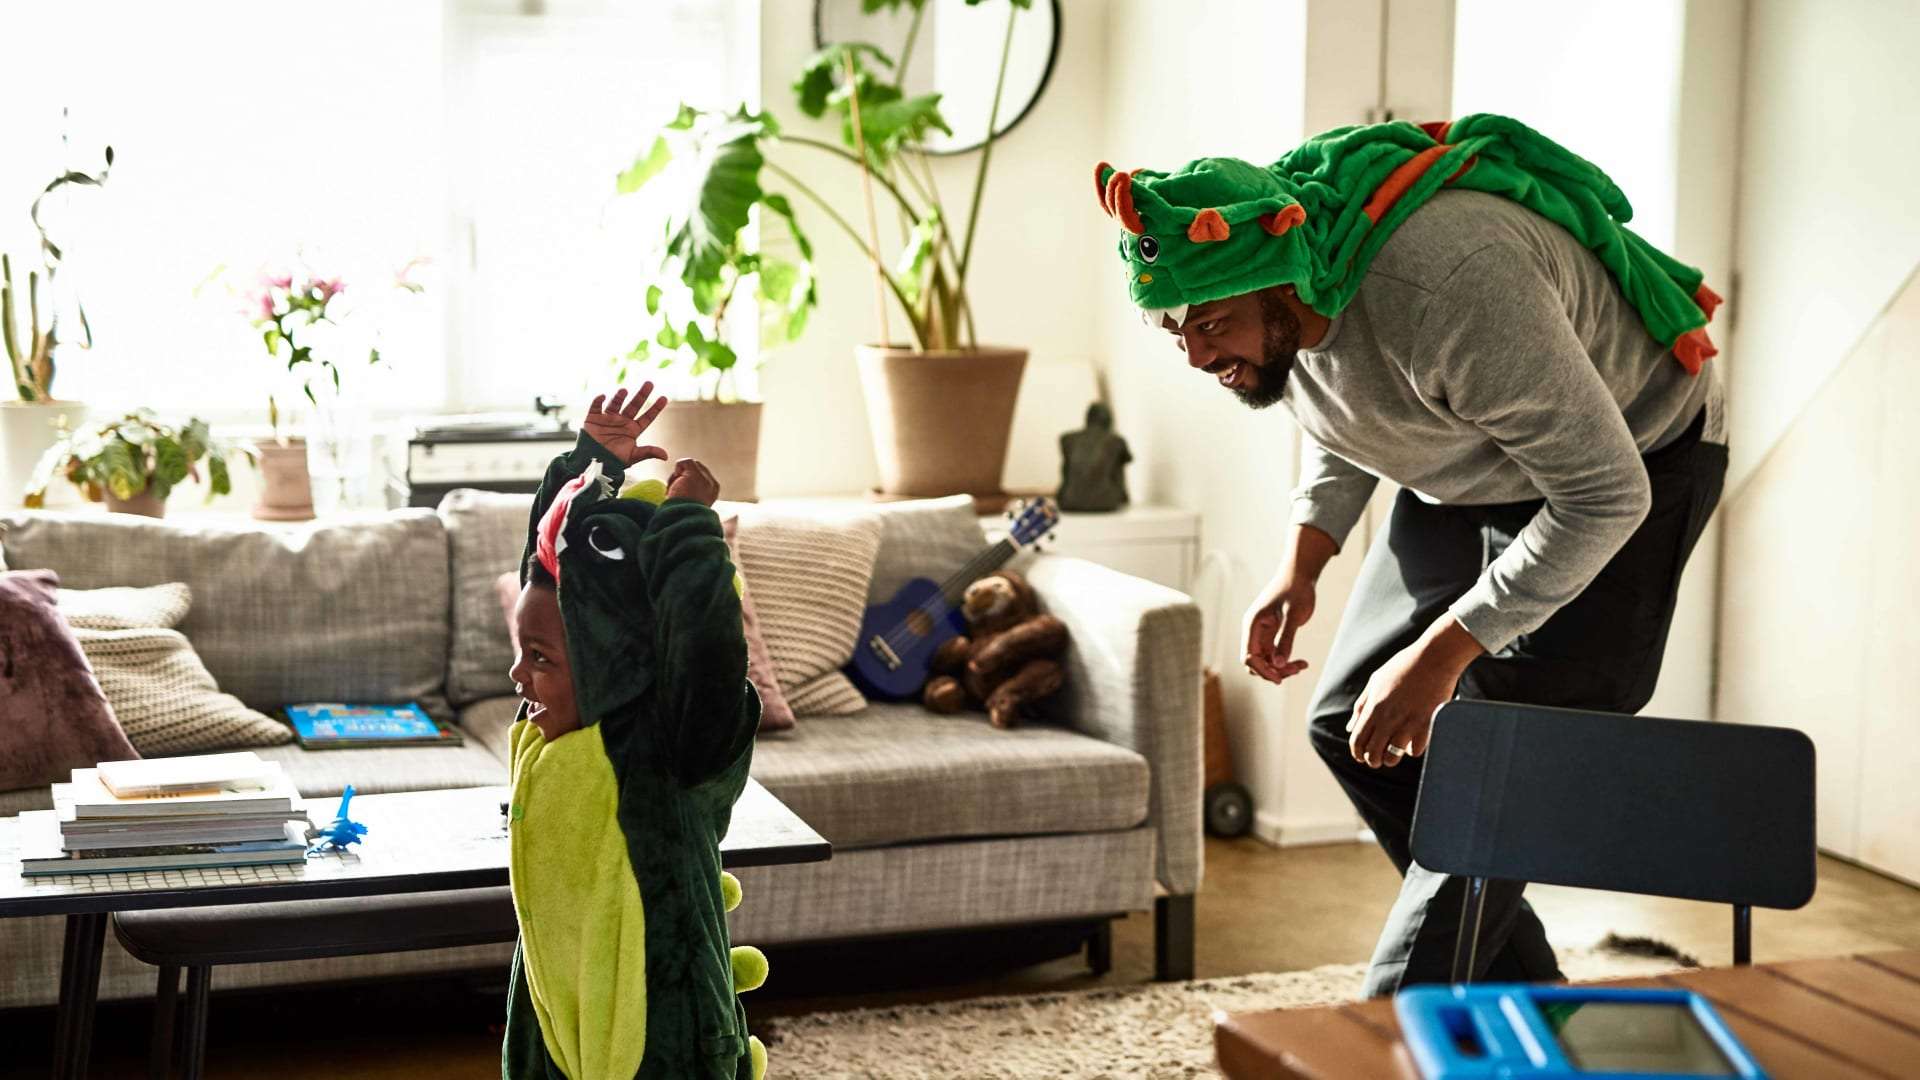 3 Ways to Ease the Daily Transition From Work to Family Life